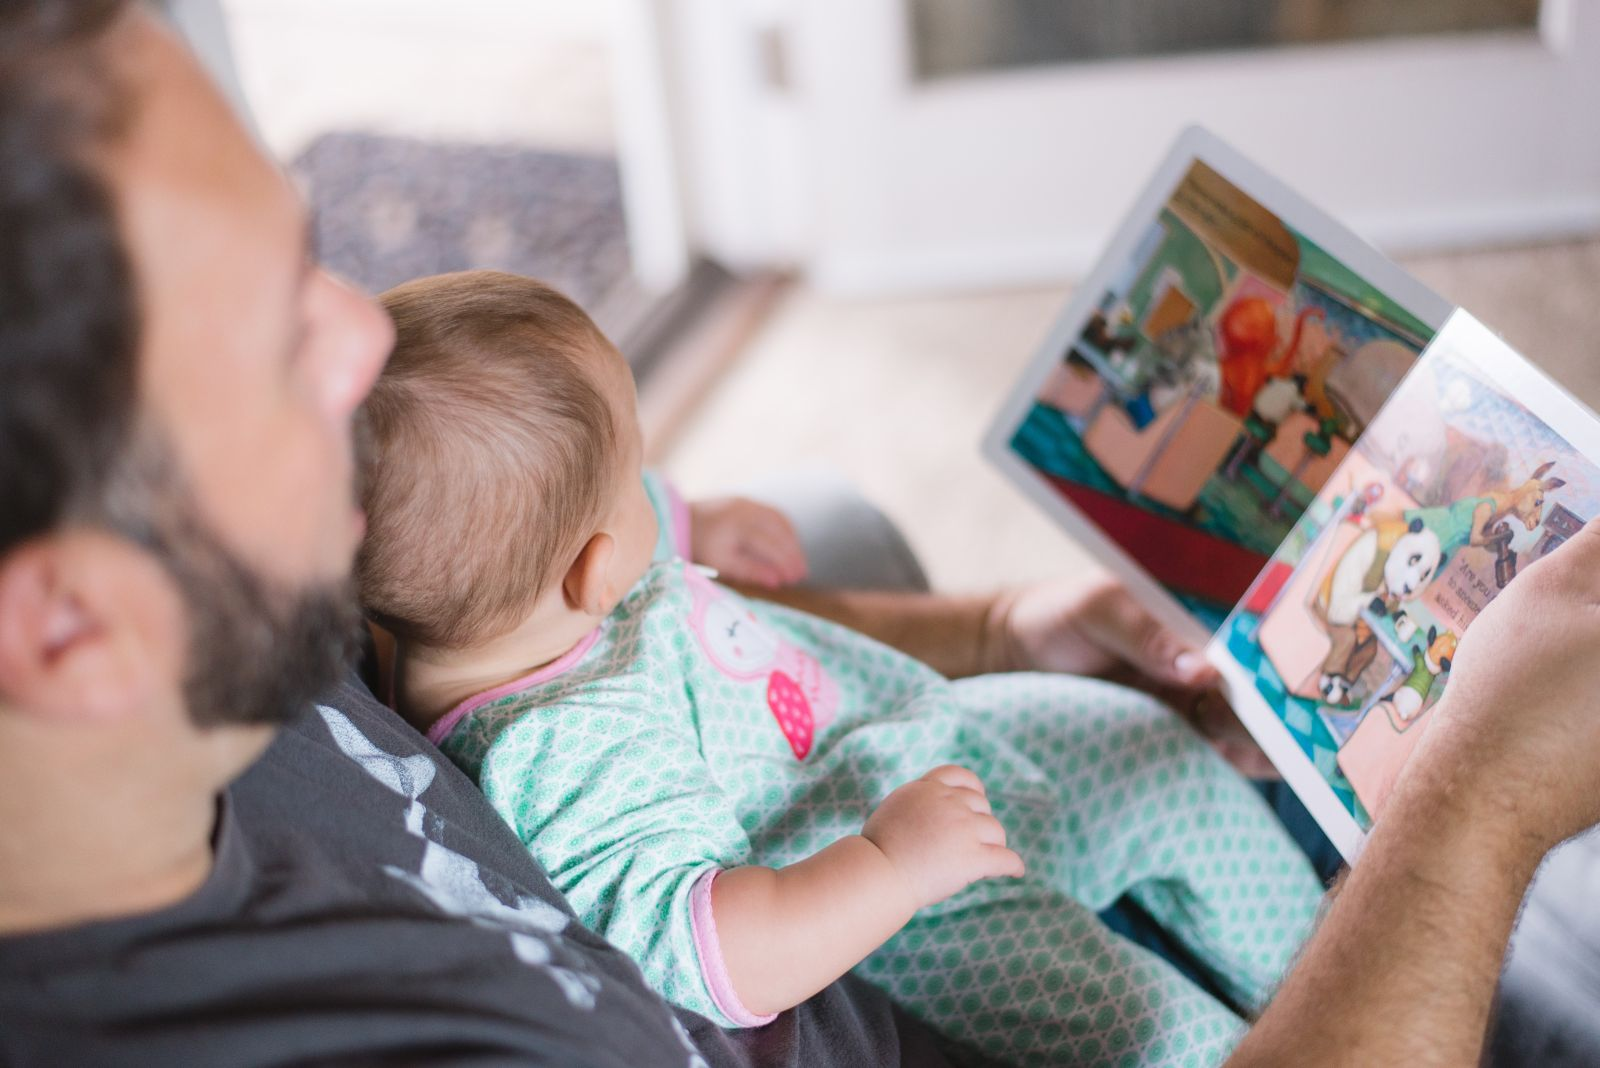 Man with infant sitting in his lap, leaning against his chest. Man is holding up book with colorful photos and both of them are looking down at pictures.